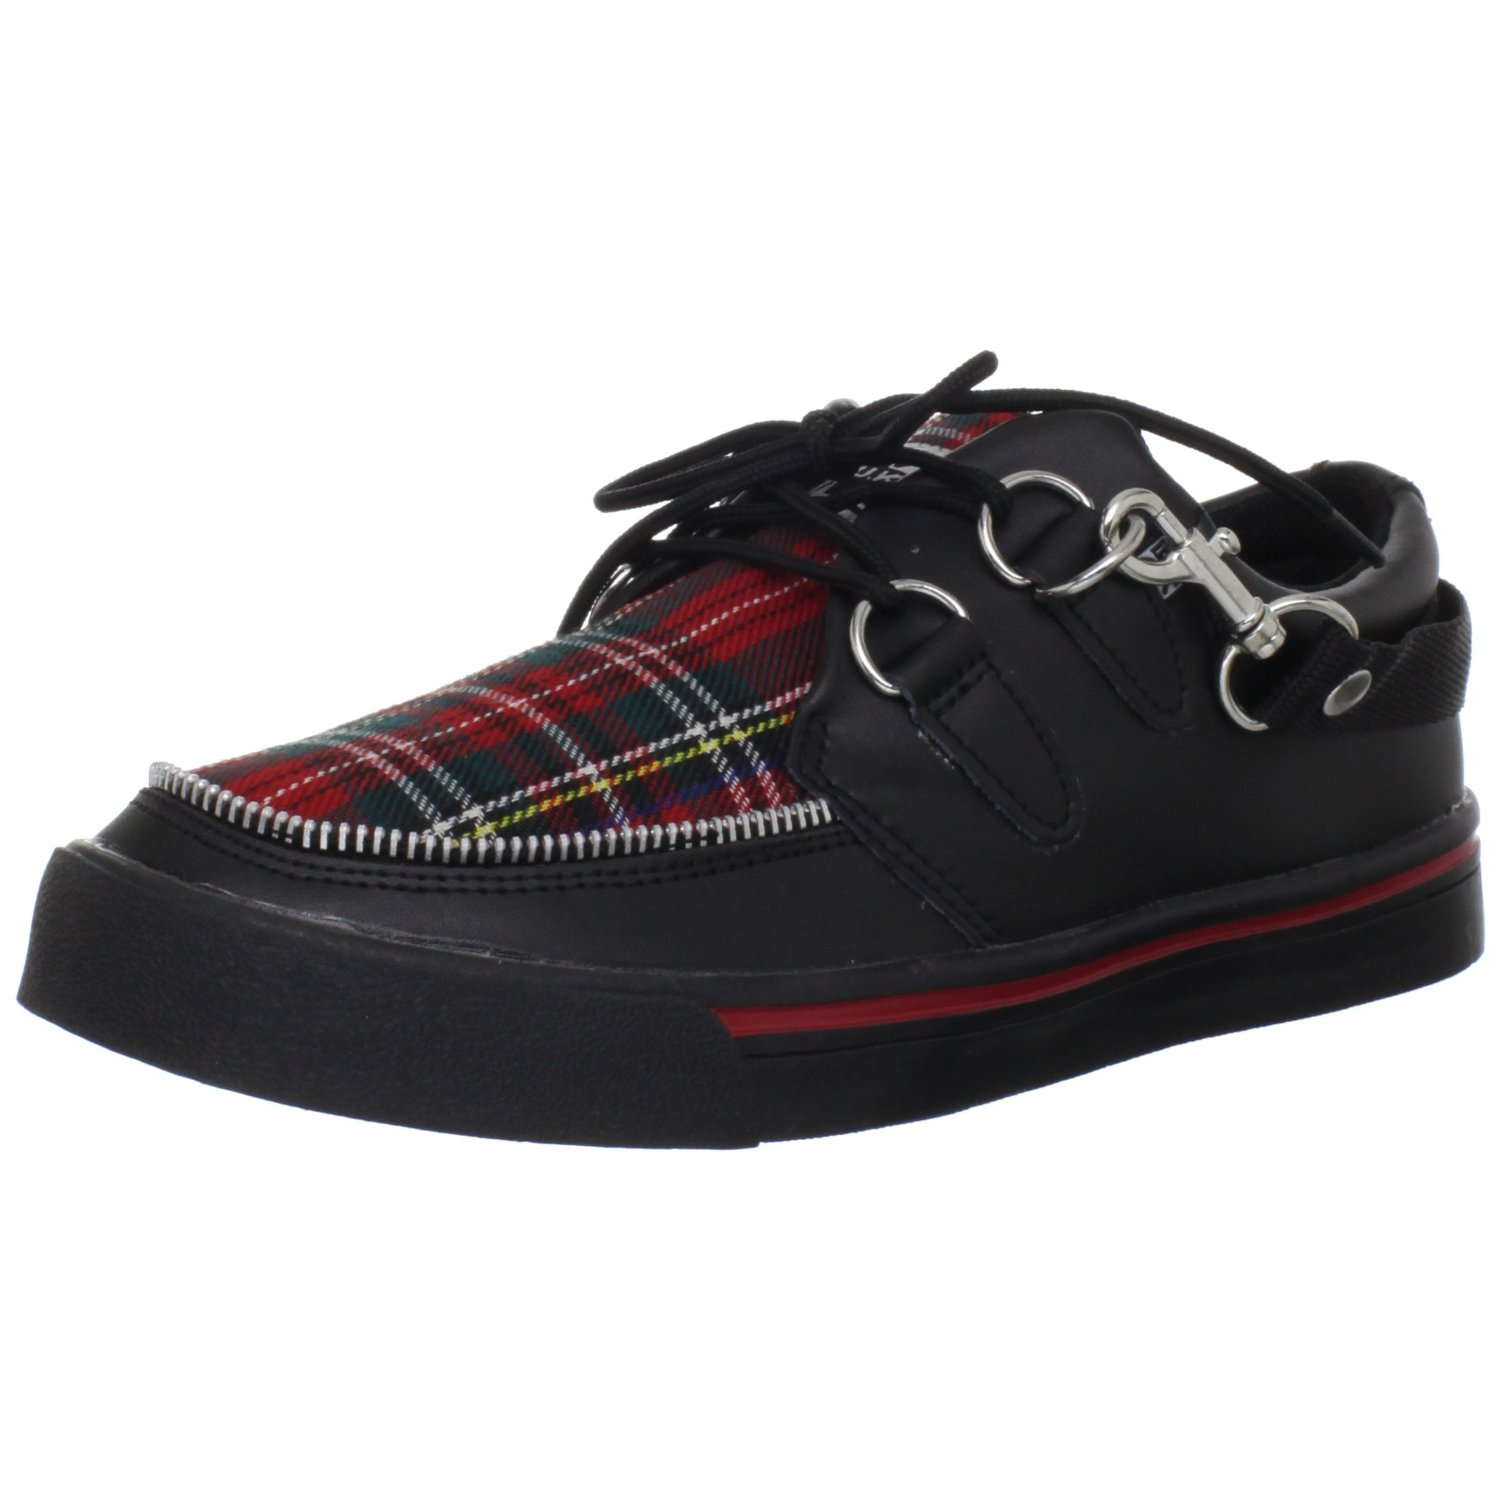 tuk a6155 black tartan plaid leather new mens womens